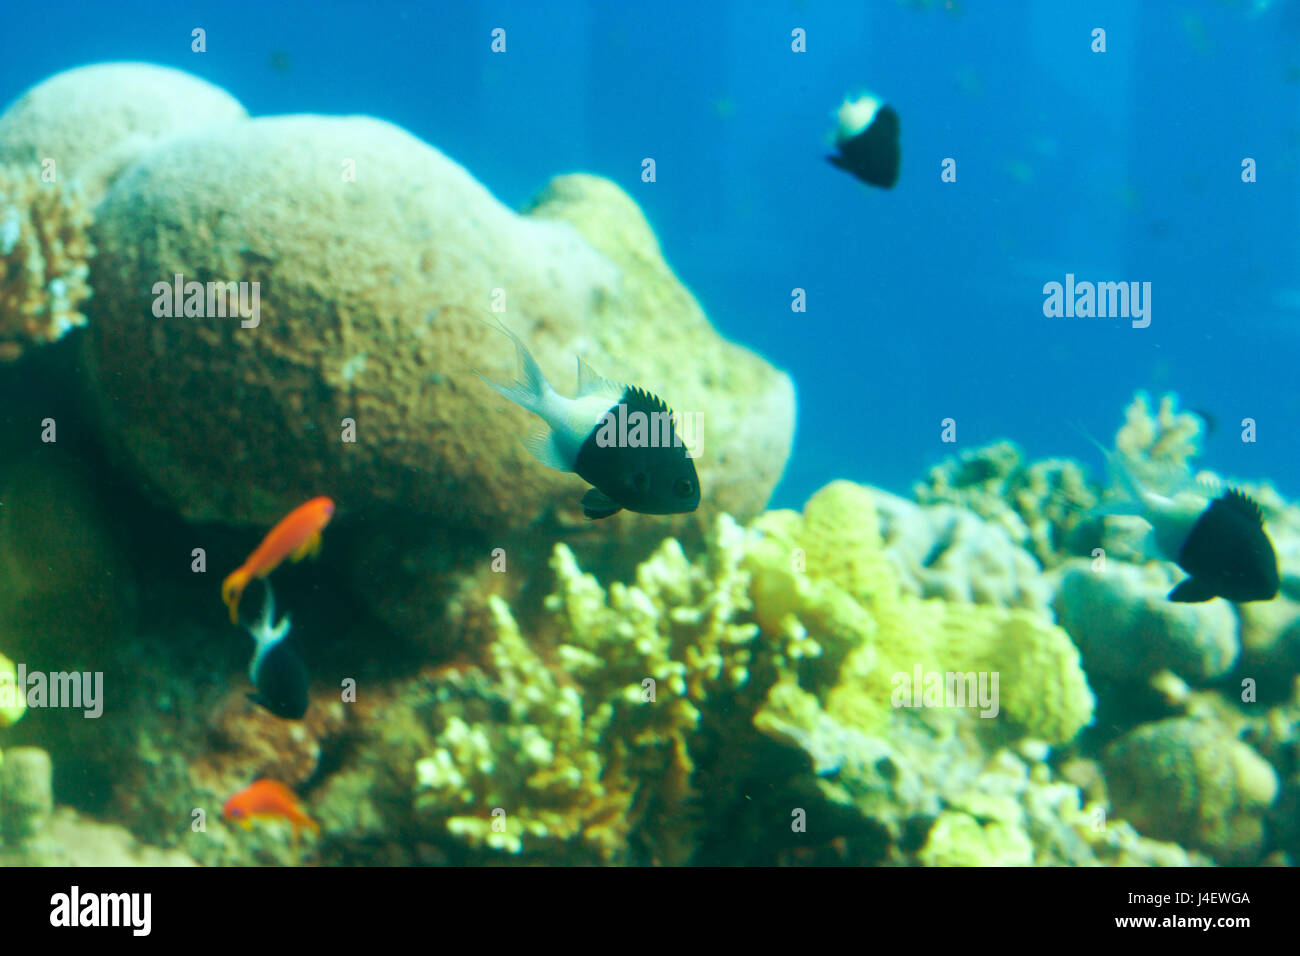 Bicolor Chromis or Chromis margaritifer on a tropical coral reef - Stock Image